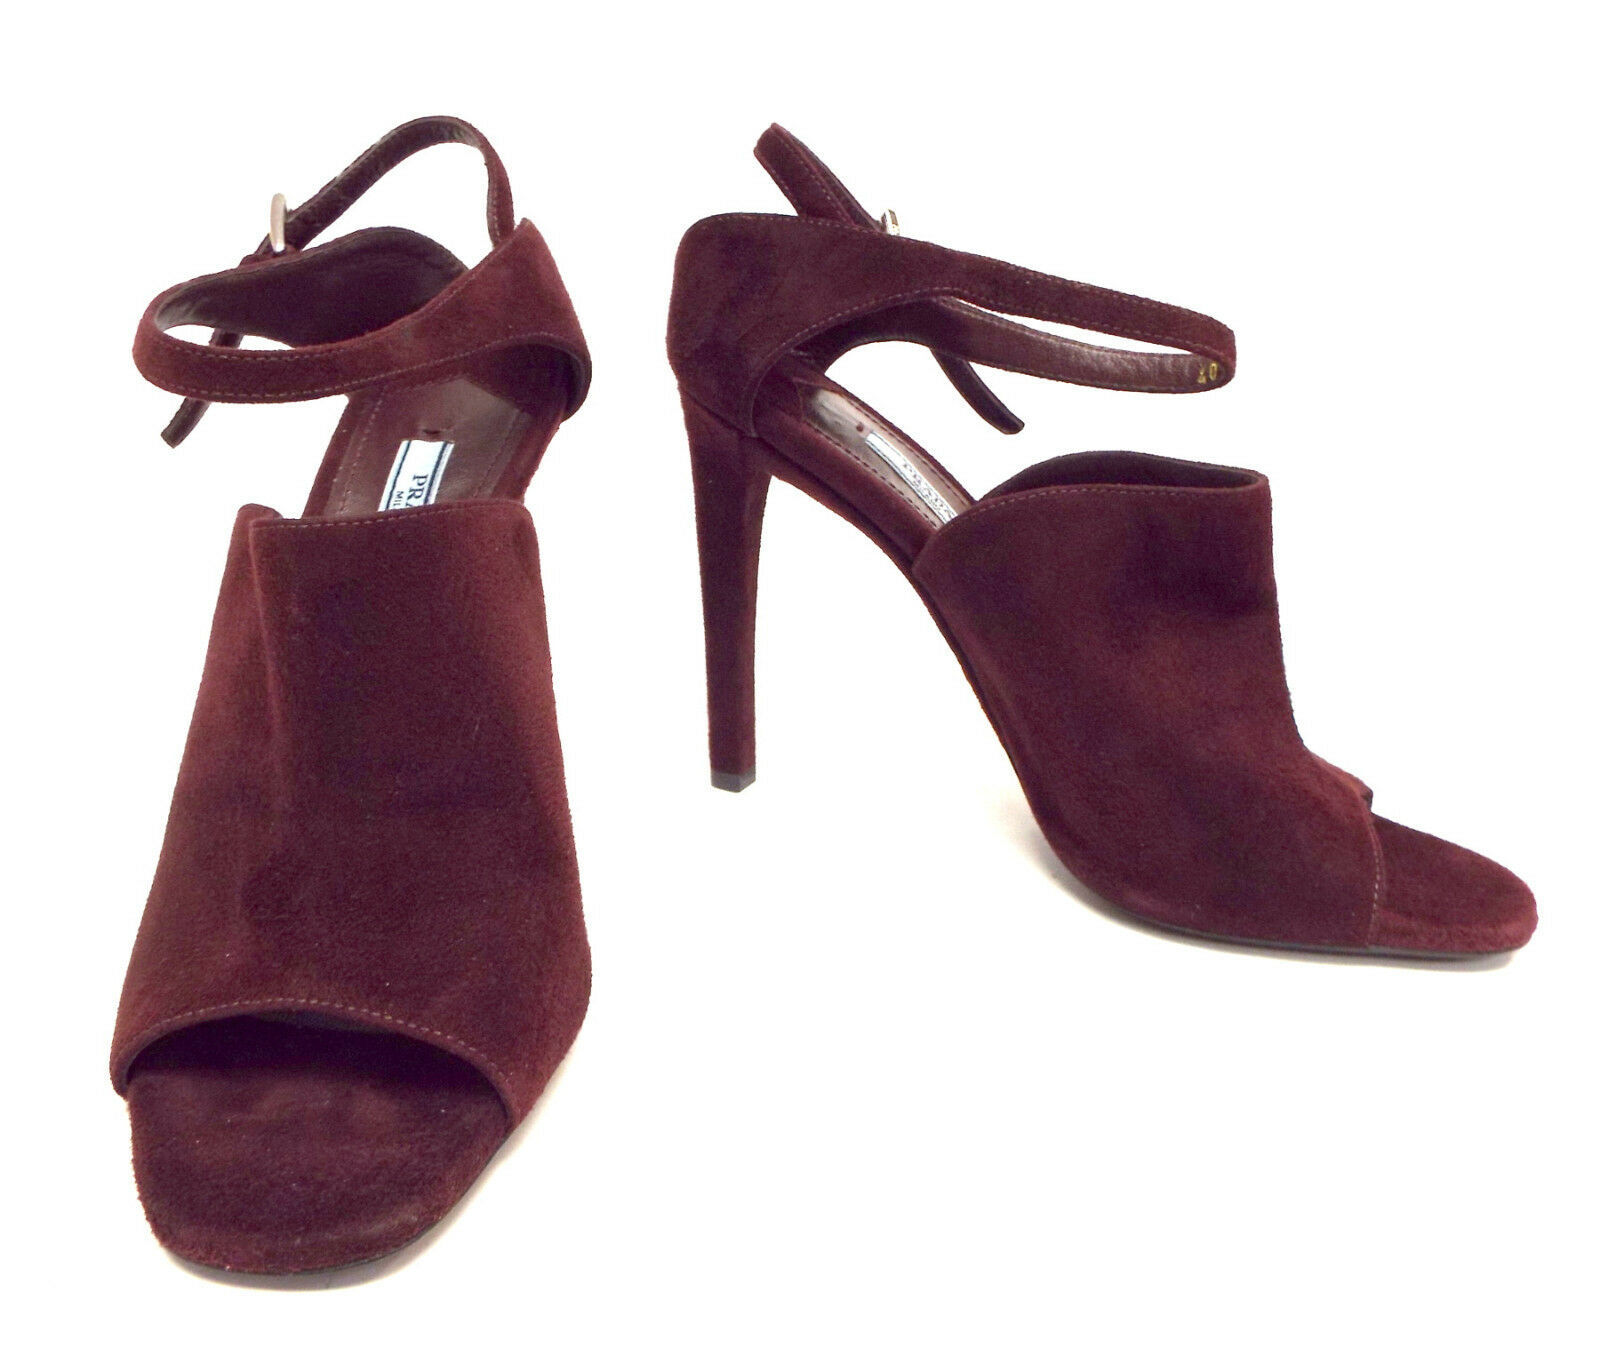 New PRADA Size 9 Burgundy Suede Open Toe Ankle Strap Heels Sandals Shoes 40 image 3